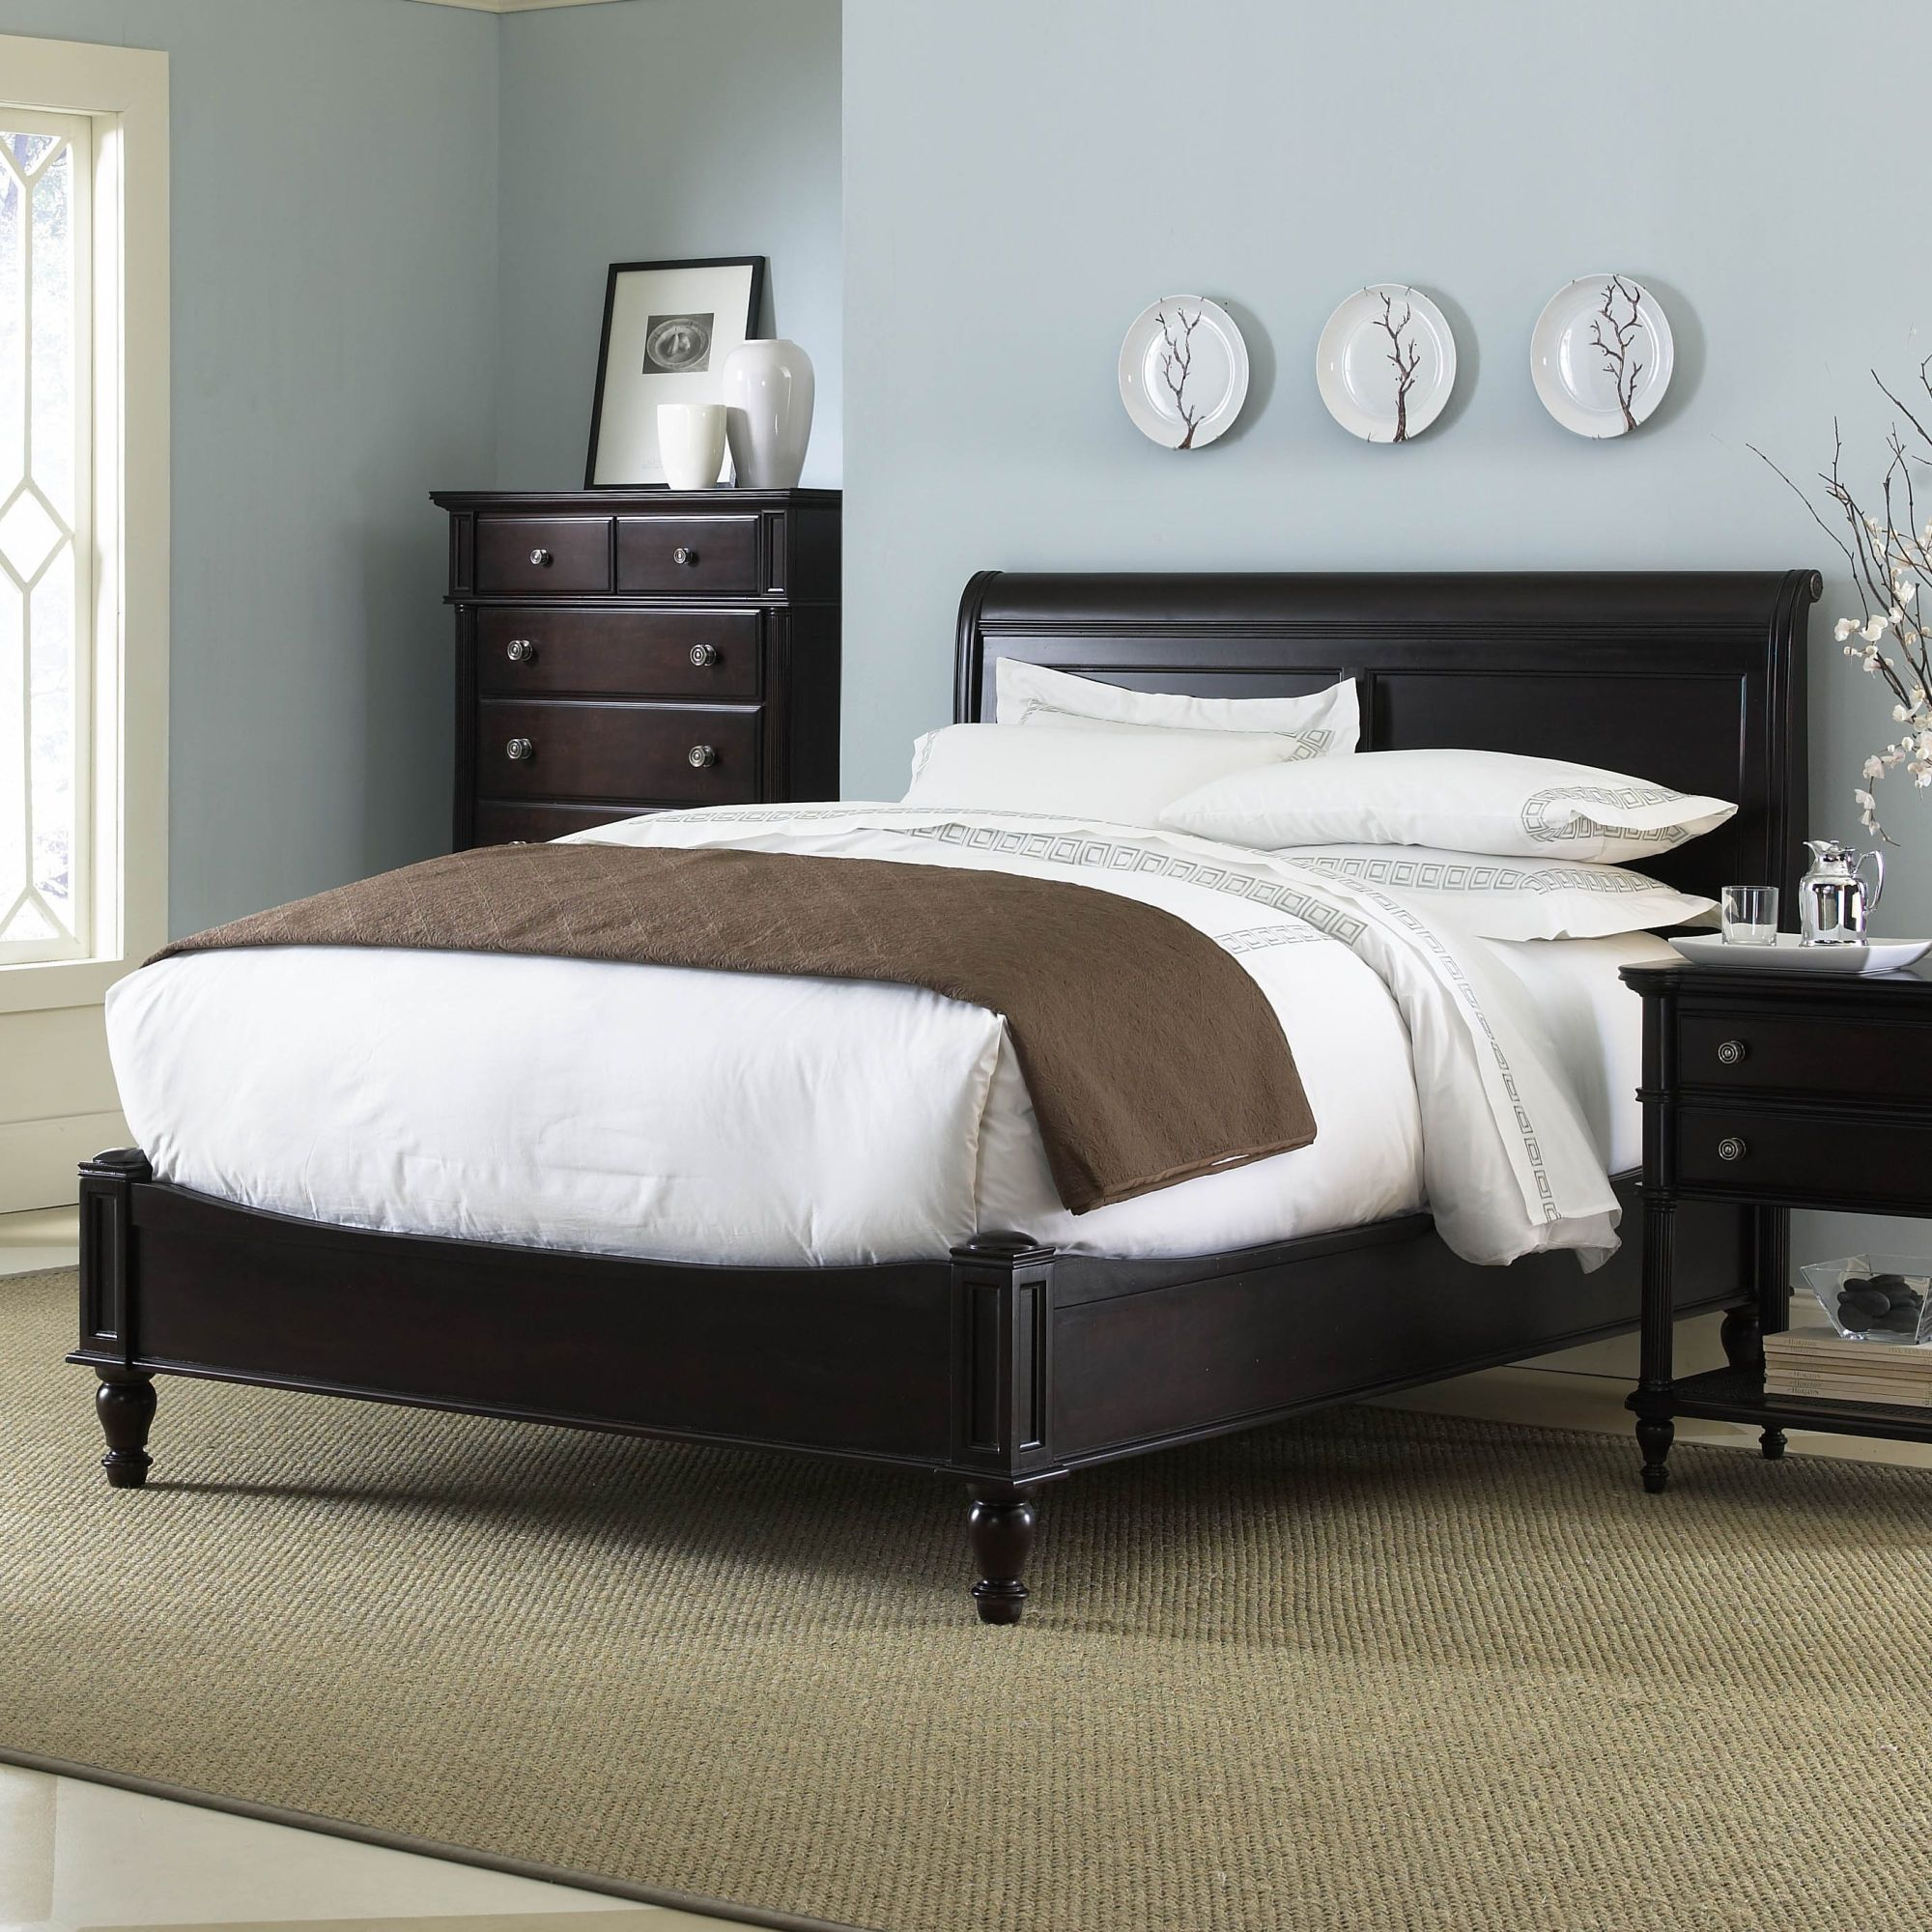 Cresent Furniture Modern Traditional Low Profile Sleigh Bed In Rich Chocolate Brown 1059